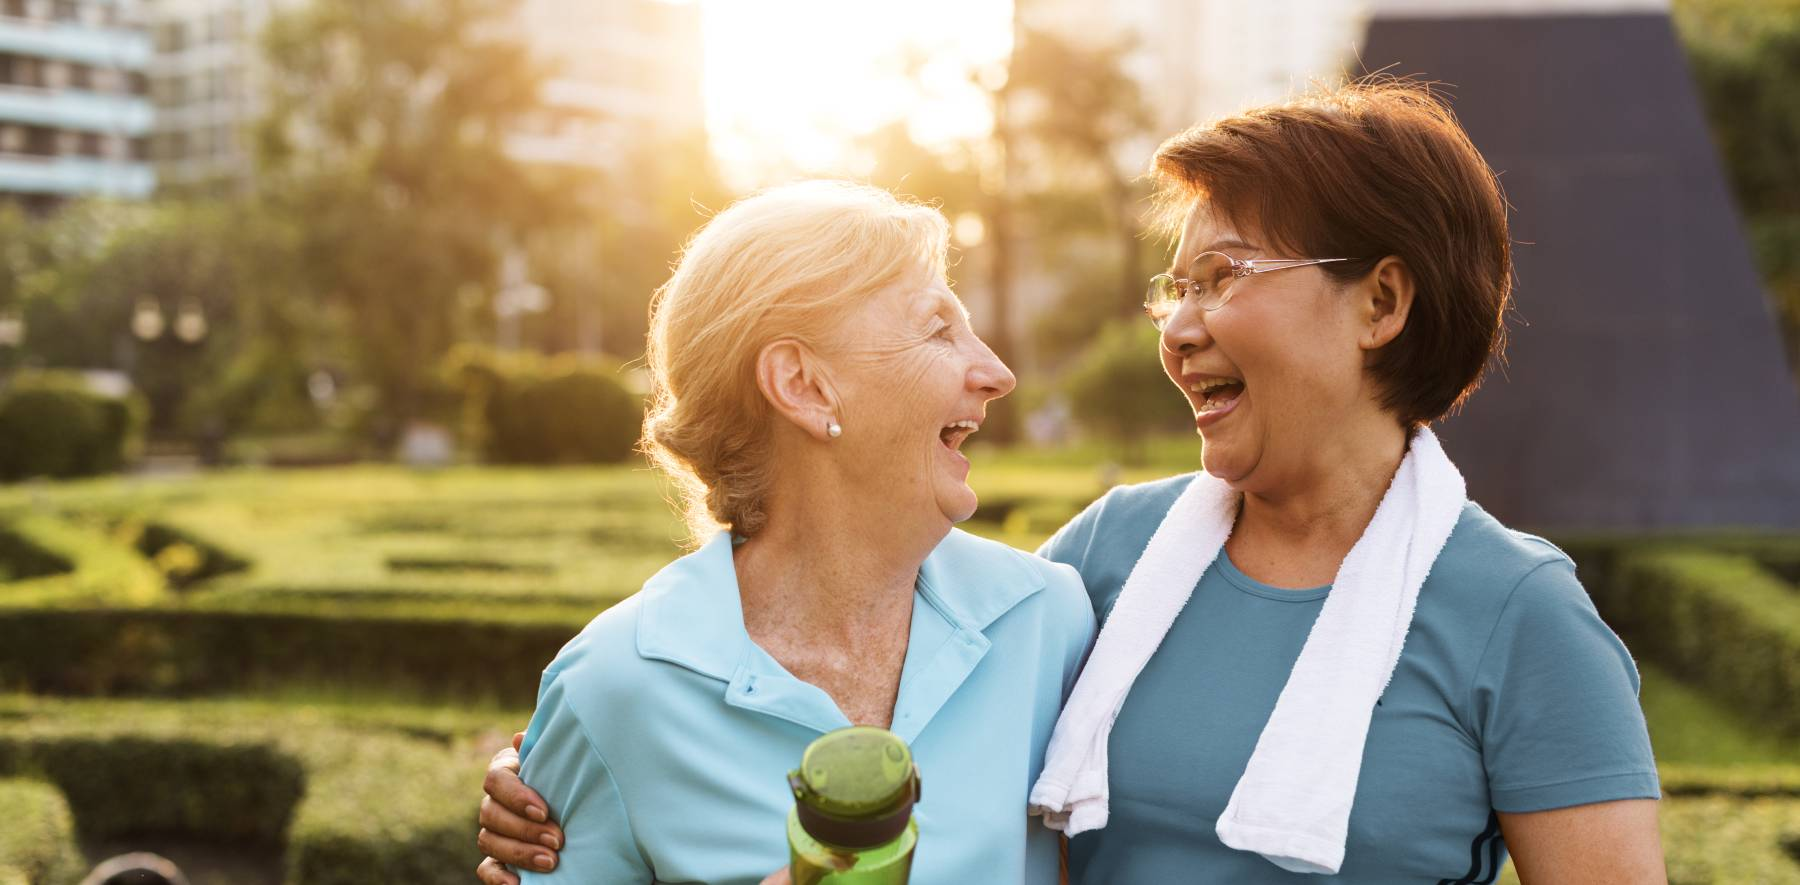 seniors staying active outdoors for emotional wellness